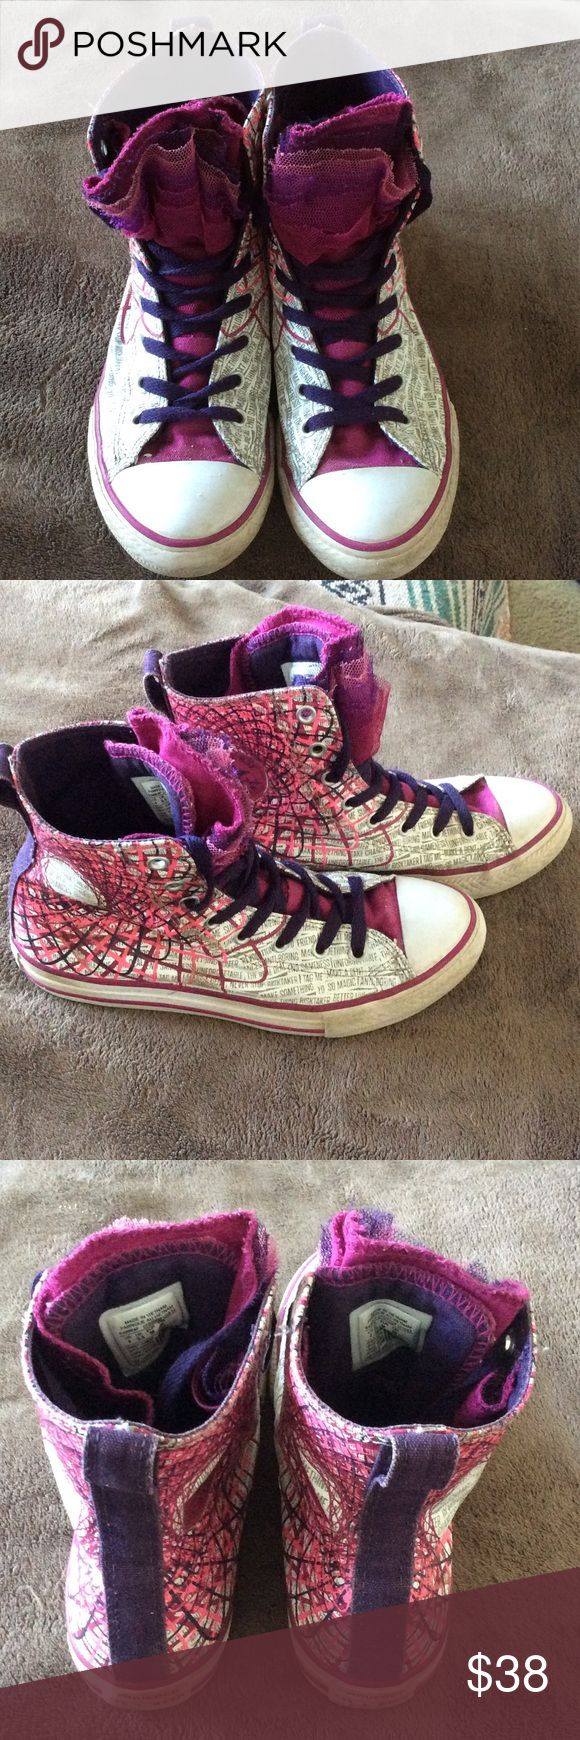 Girls Converse high tops Awesome pair of graphic print high tops with layered tulle tongues attached on each side with elastic.  Easy to slip on and go!  Light wear--some gum on sole.  Should fit a women's 6.  No box--price firm. Converse Shoes Sneakers